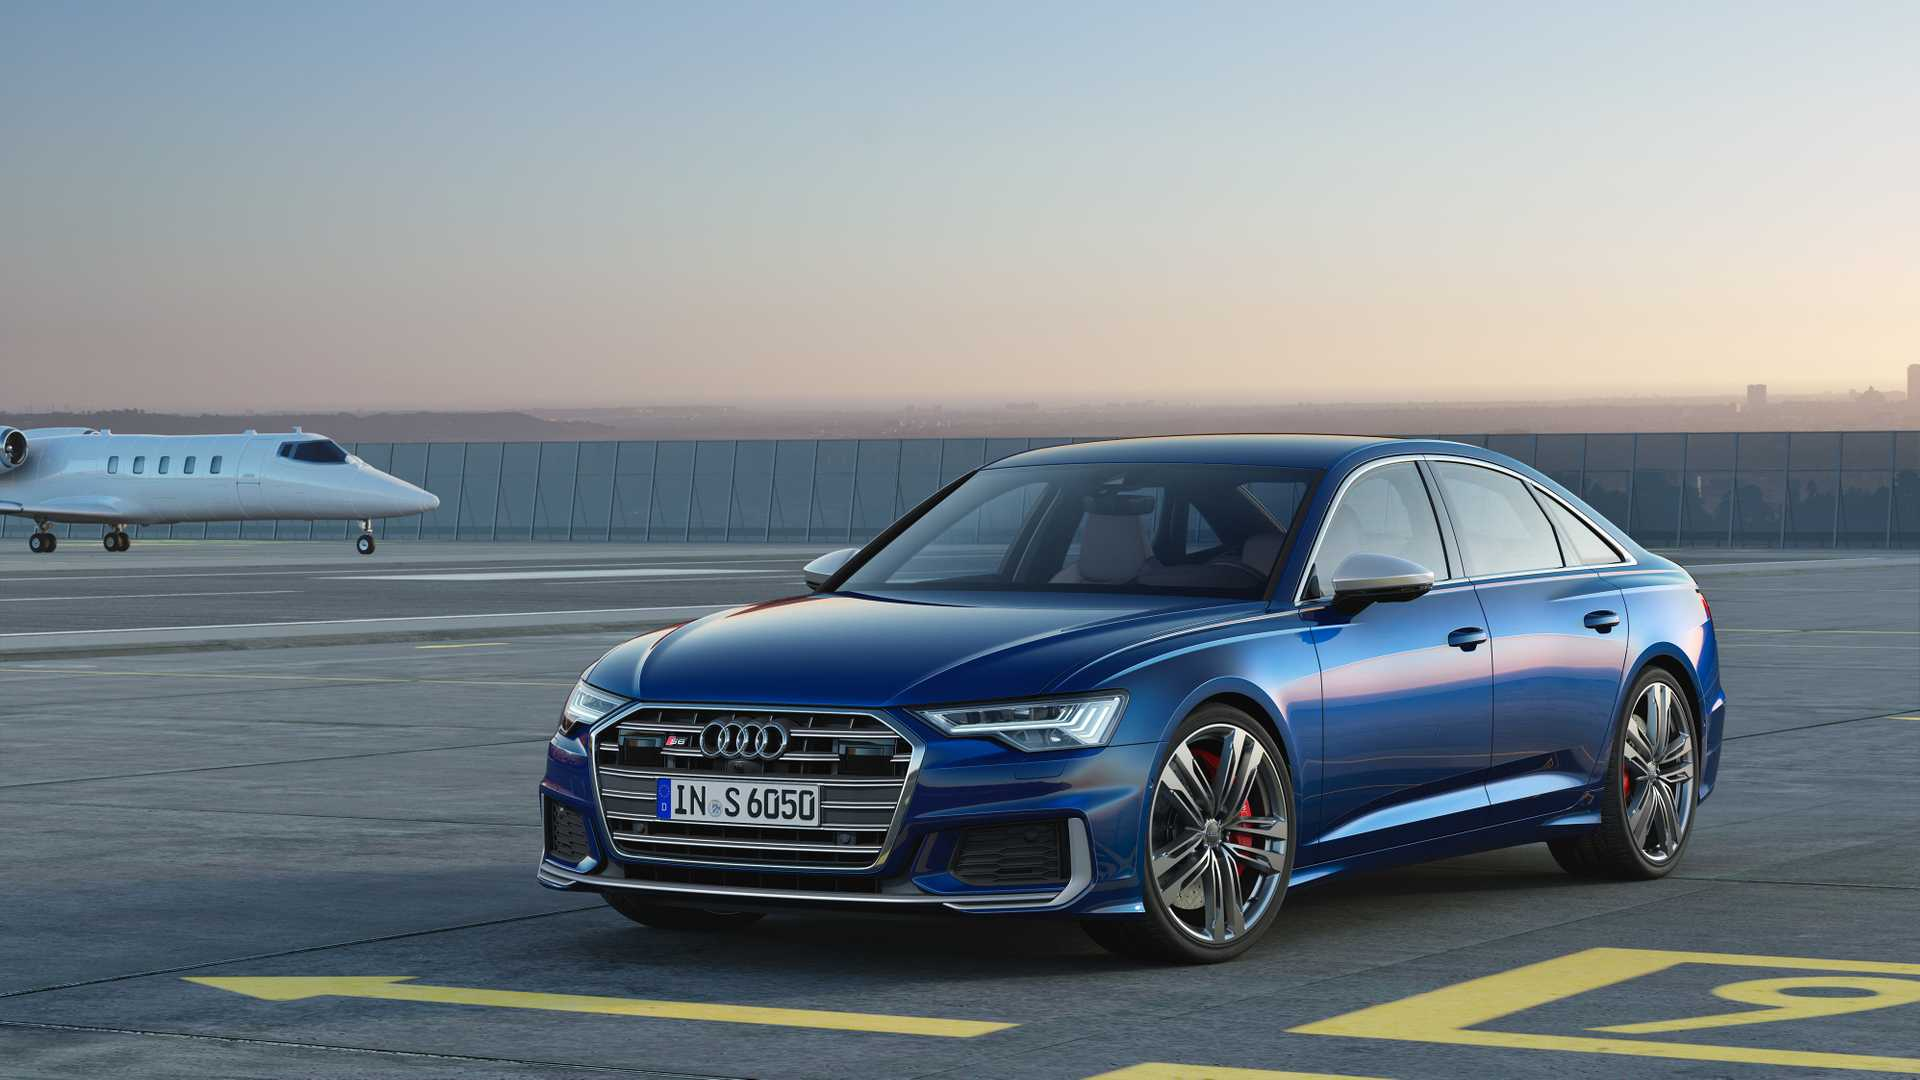 2020 audi s6 and s7 revealed  tdi for europe  tfsi for u s